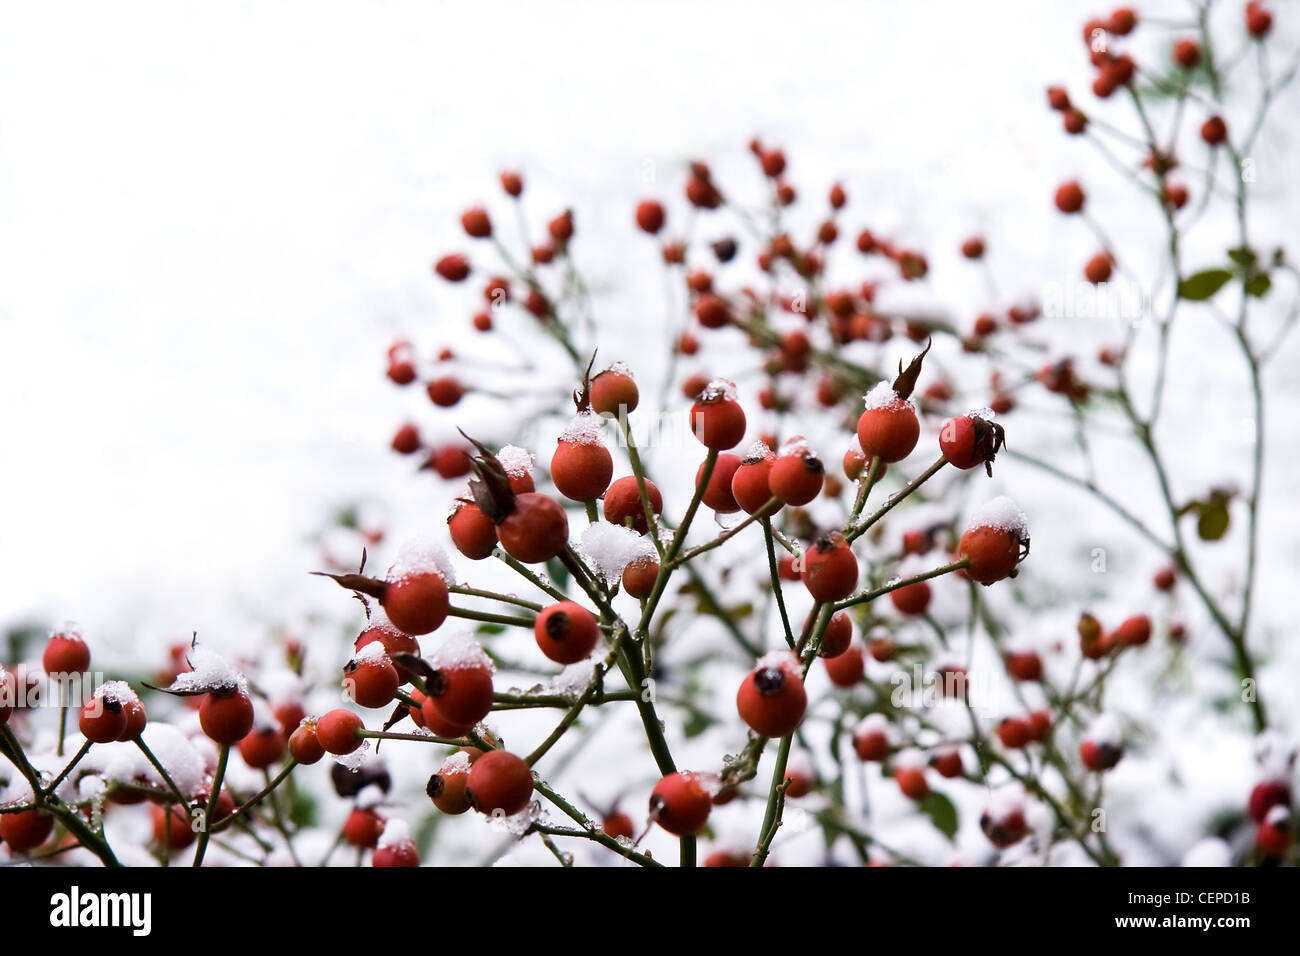 red berries cold stockfotos red berries cold bilder alamy. Black Bedroom Furniture Sets. Home Design Ideas